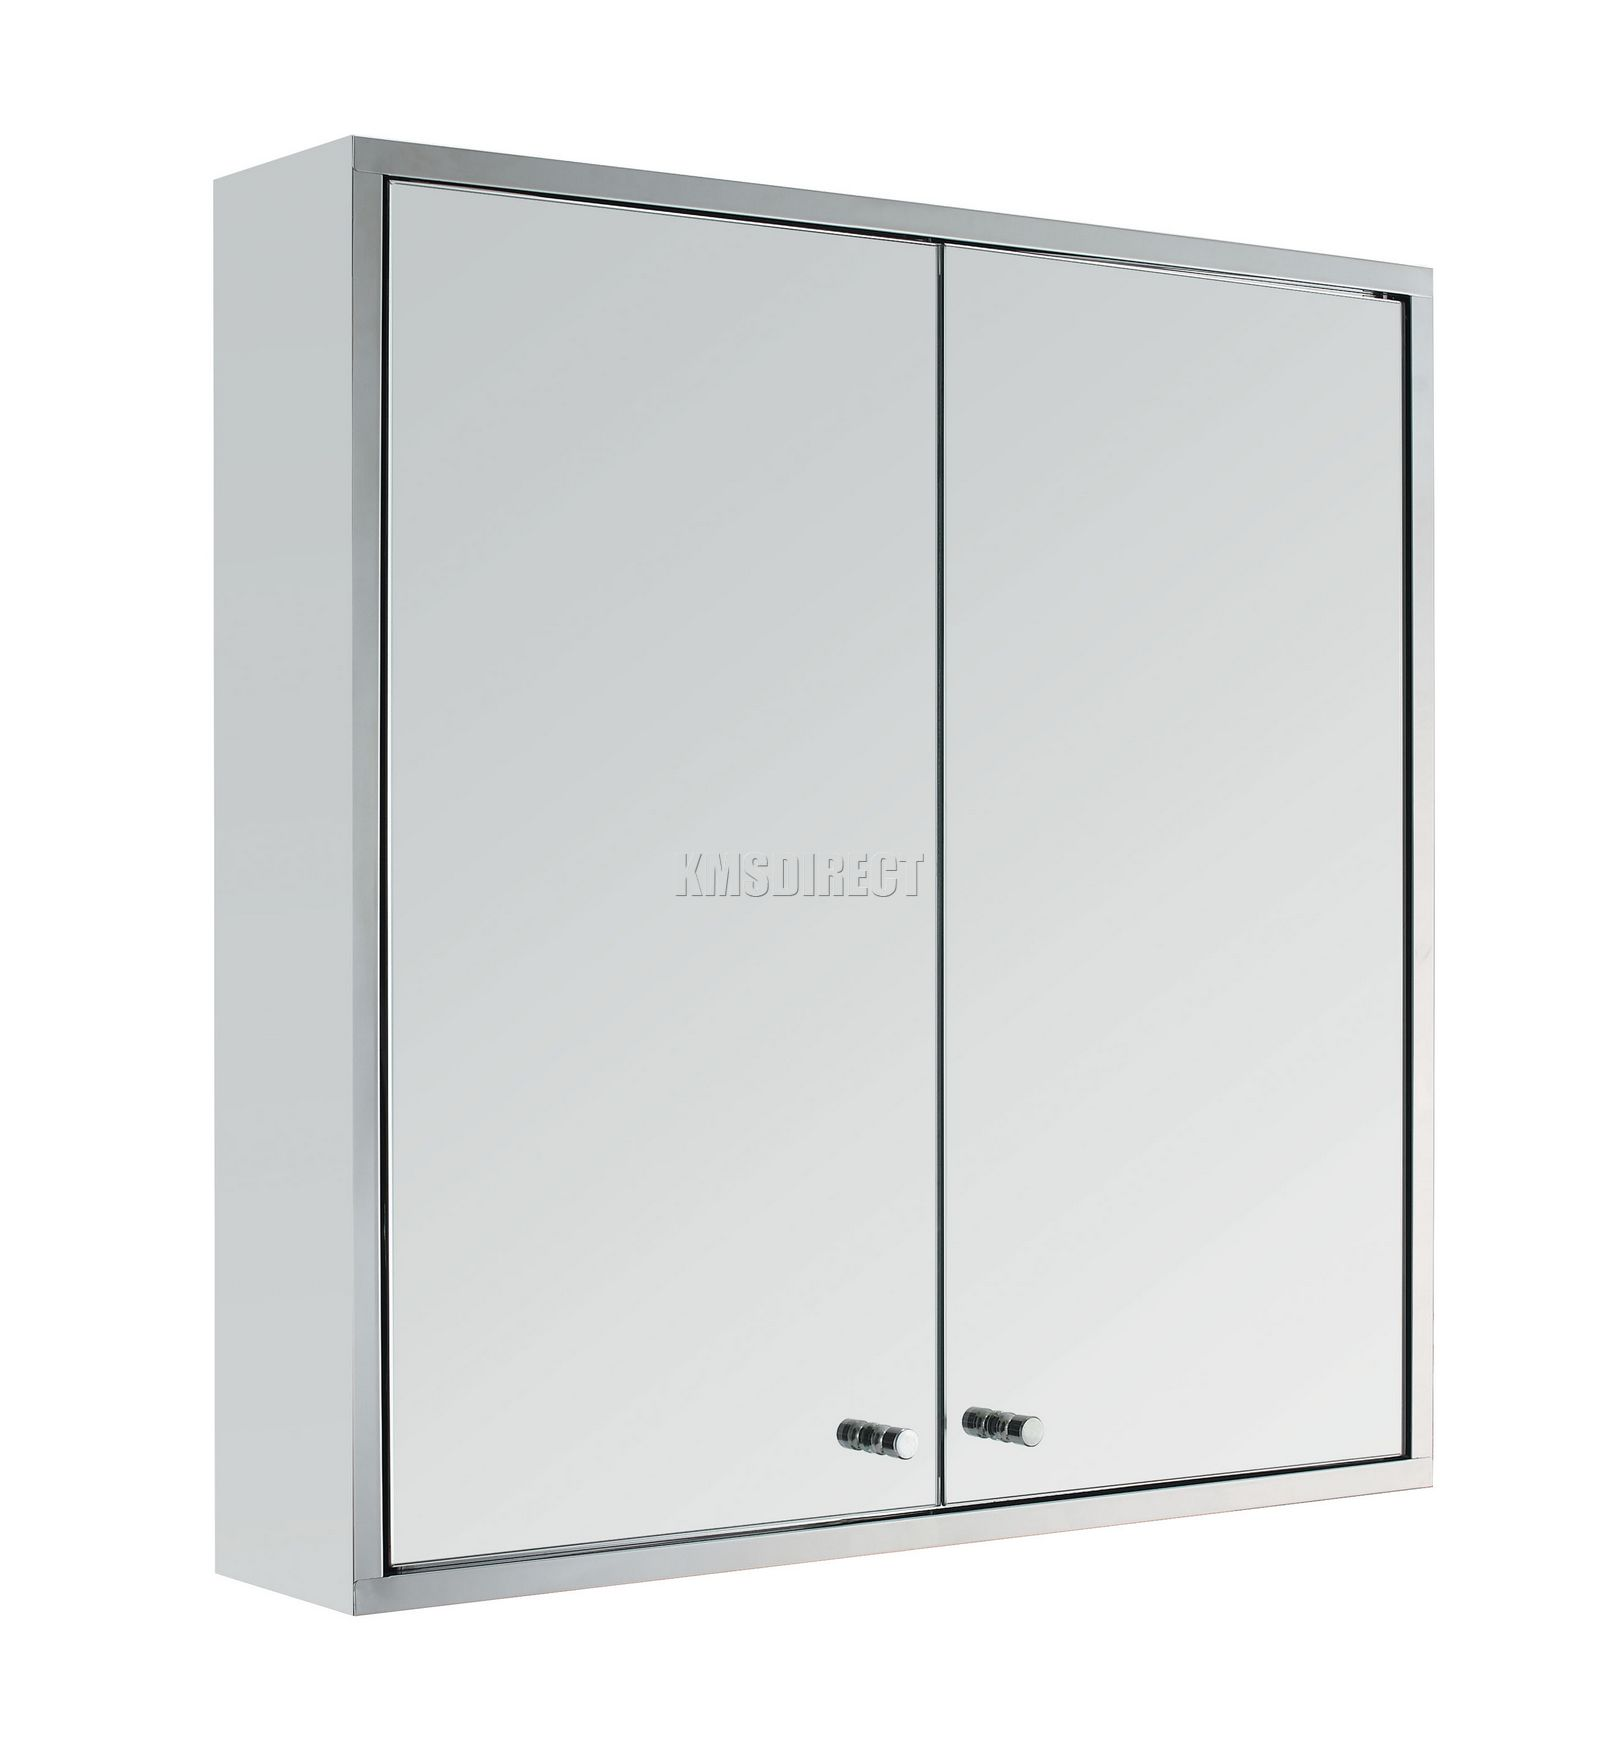 Sentinel FoxHunter Stainless Wall Mount Mirror Bathroom Cabinet Storage Cupboard Double